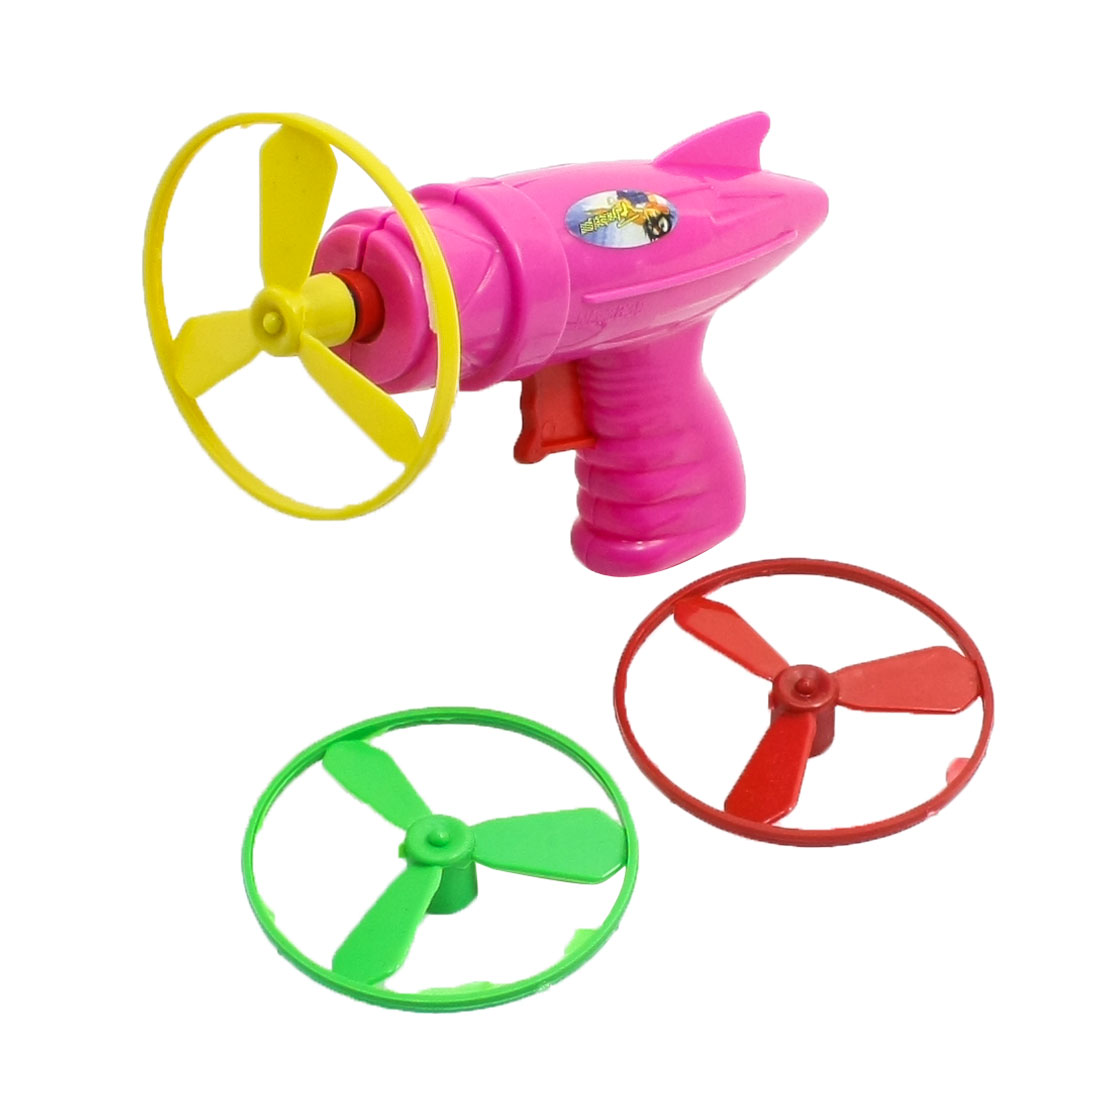 Fuchsia Plastic w Three 55mm Diameter Flywheels Toy for Kids